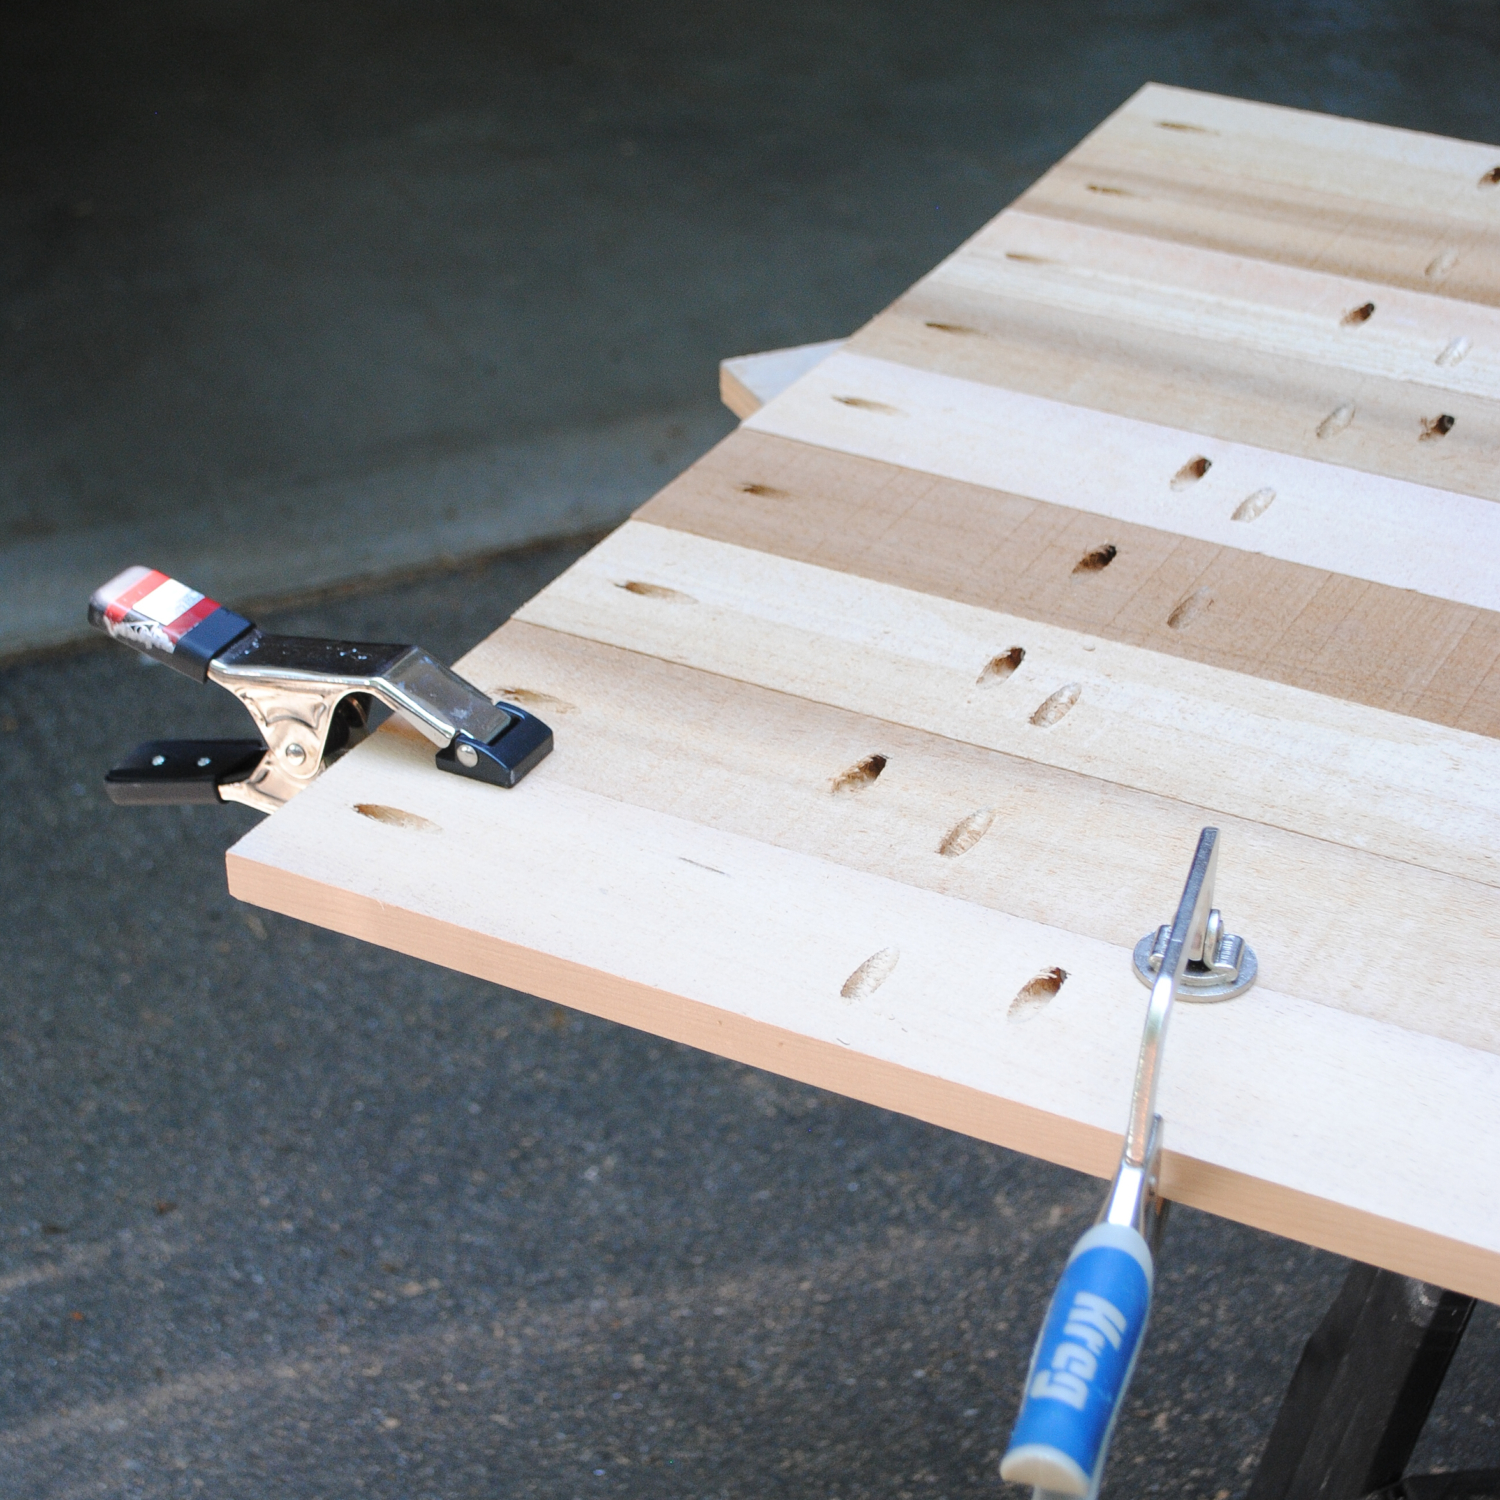 Use A Kreg Jig To Drill Two Pocket Holes At Each End Of The 36u2033 1x4s. Align  One Of These Boards Perpindicular To One Short End Of The Table Top, ...